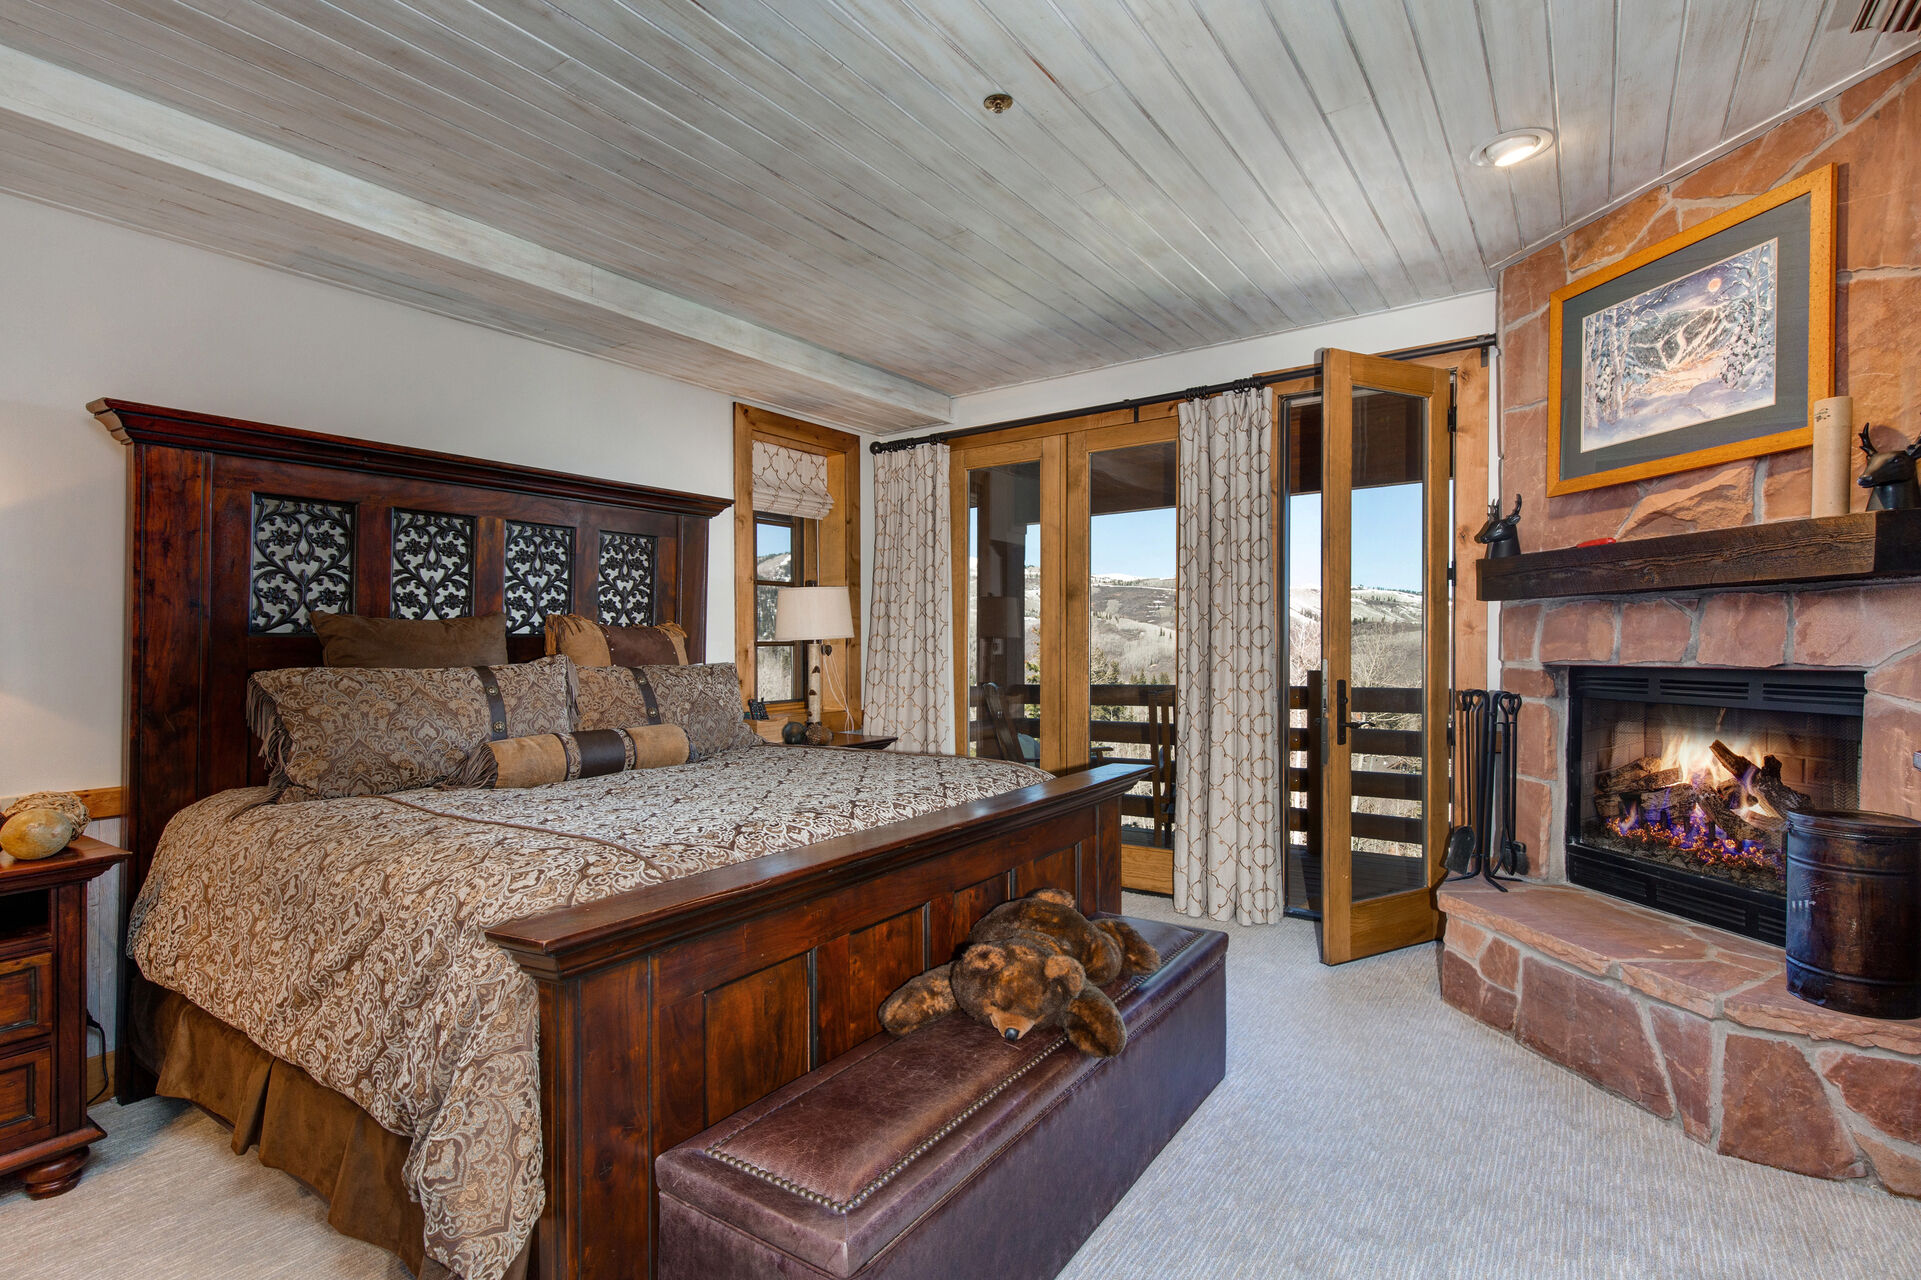 Lower Level Master Bedroom 4 with a King Bed, a Fireplace With Clean Burning Fire Logs (Provided), a 45